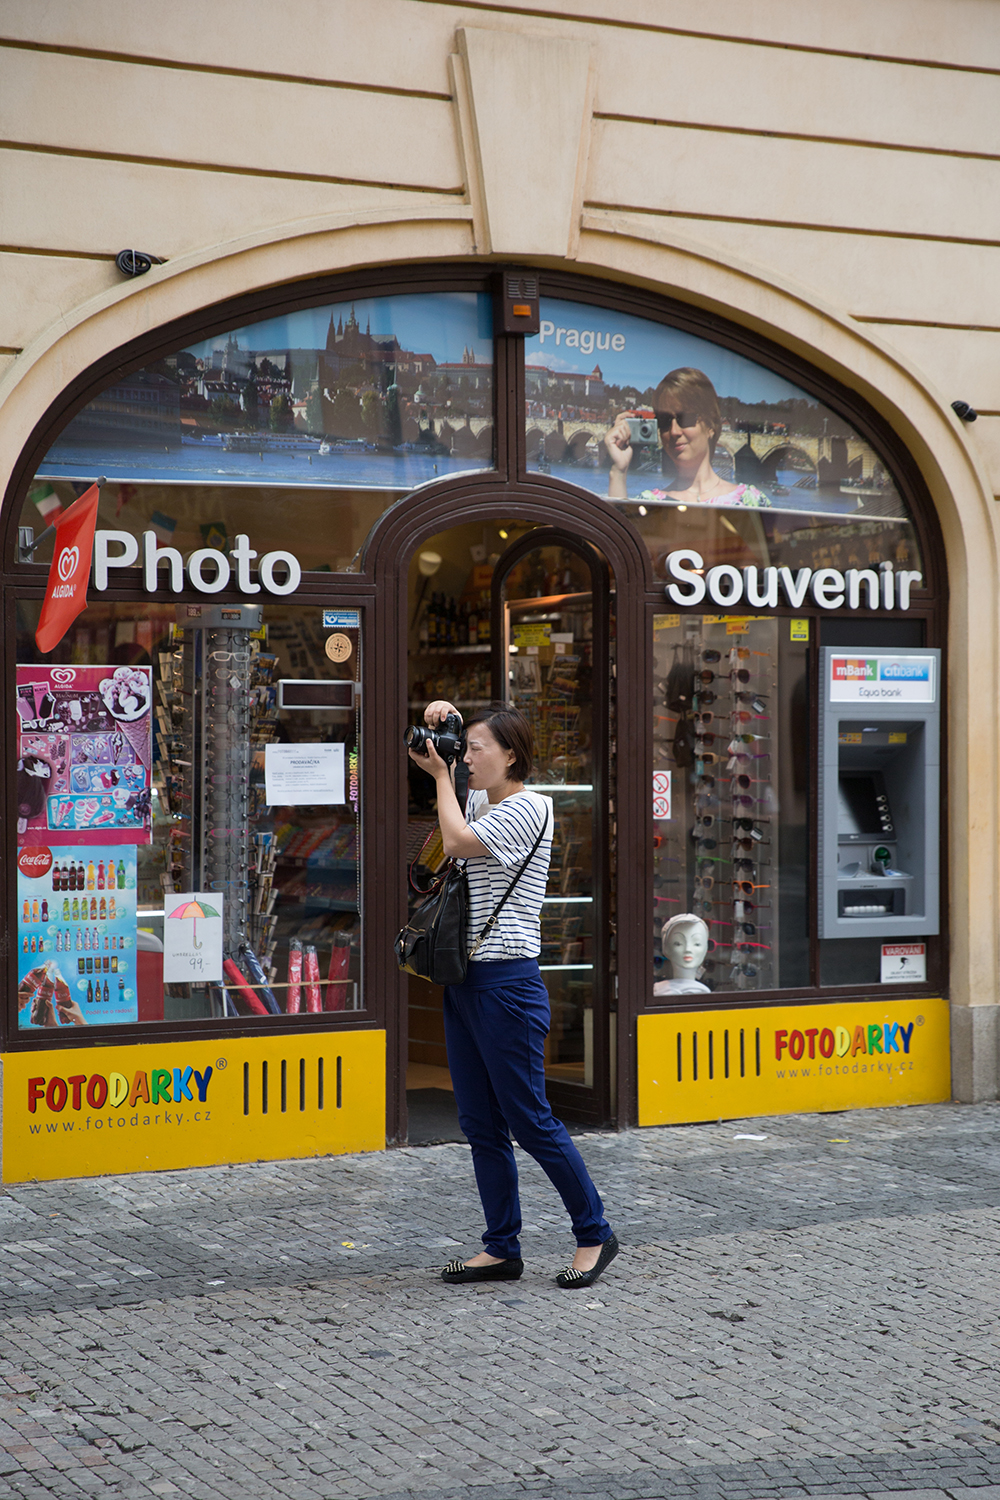 A documentary photograph of a tourist taking a photograph outside a photo and souvenir shop in Prague, Czech Republic